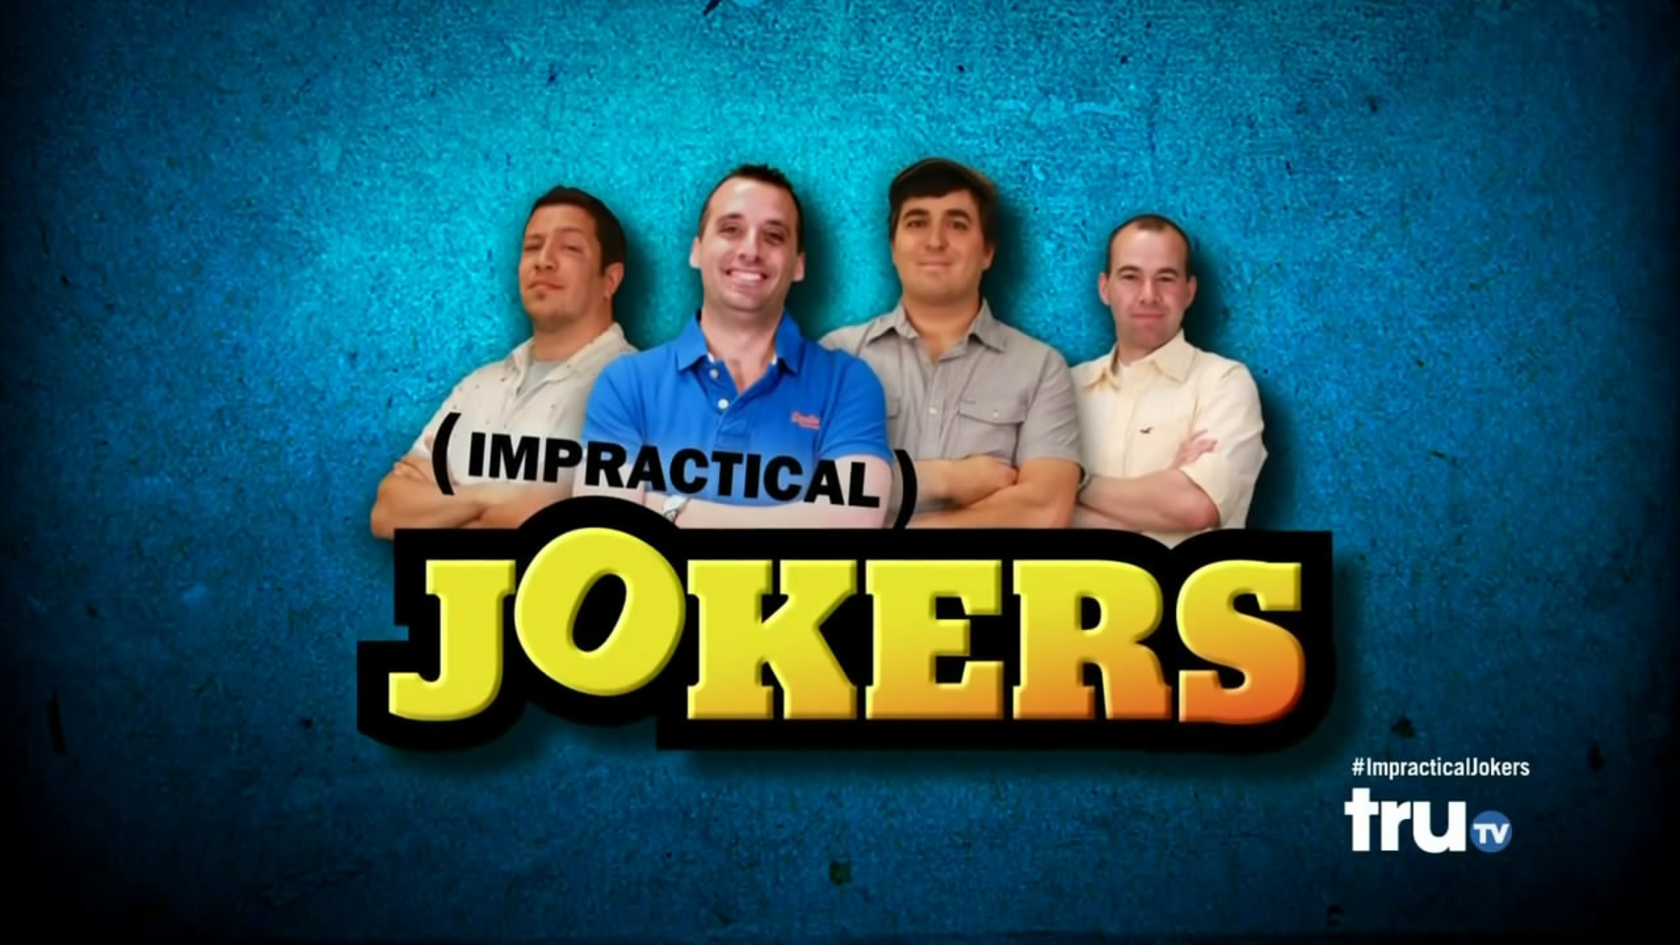 Photo of 3 Funny challenges from Impractical Jokers